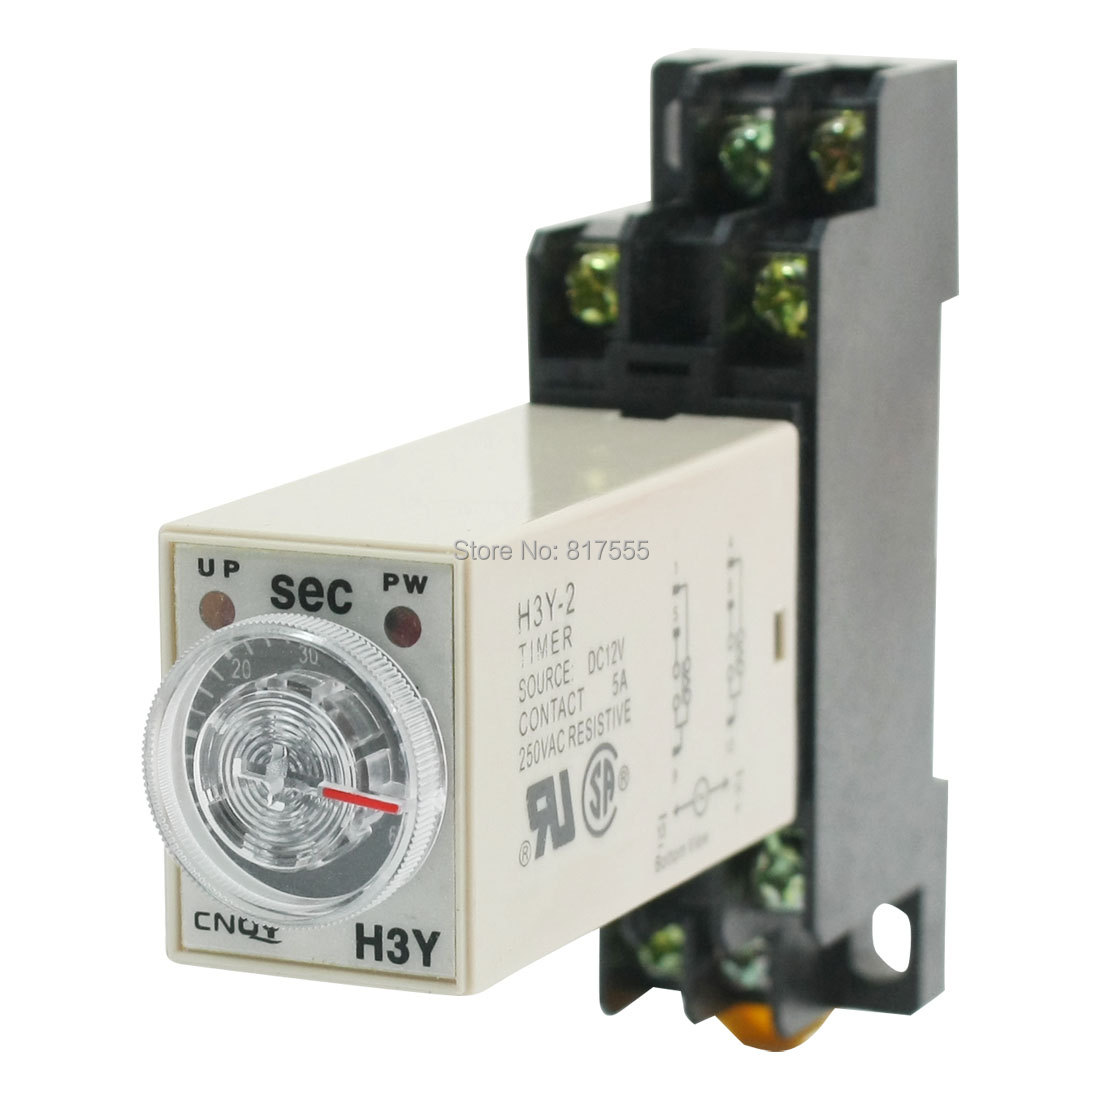 Knob Control 12VDC 8P DPDT 0-60 Seconds Timer Time Delay Relay w Socket Discount 50(China (Mainland))